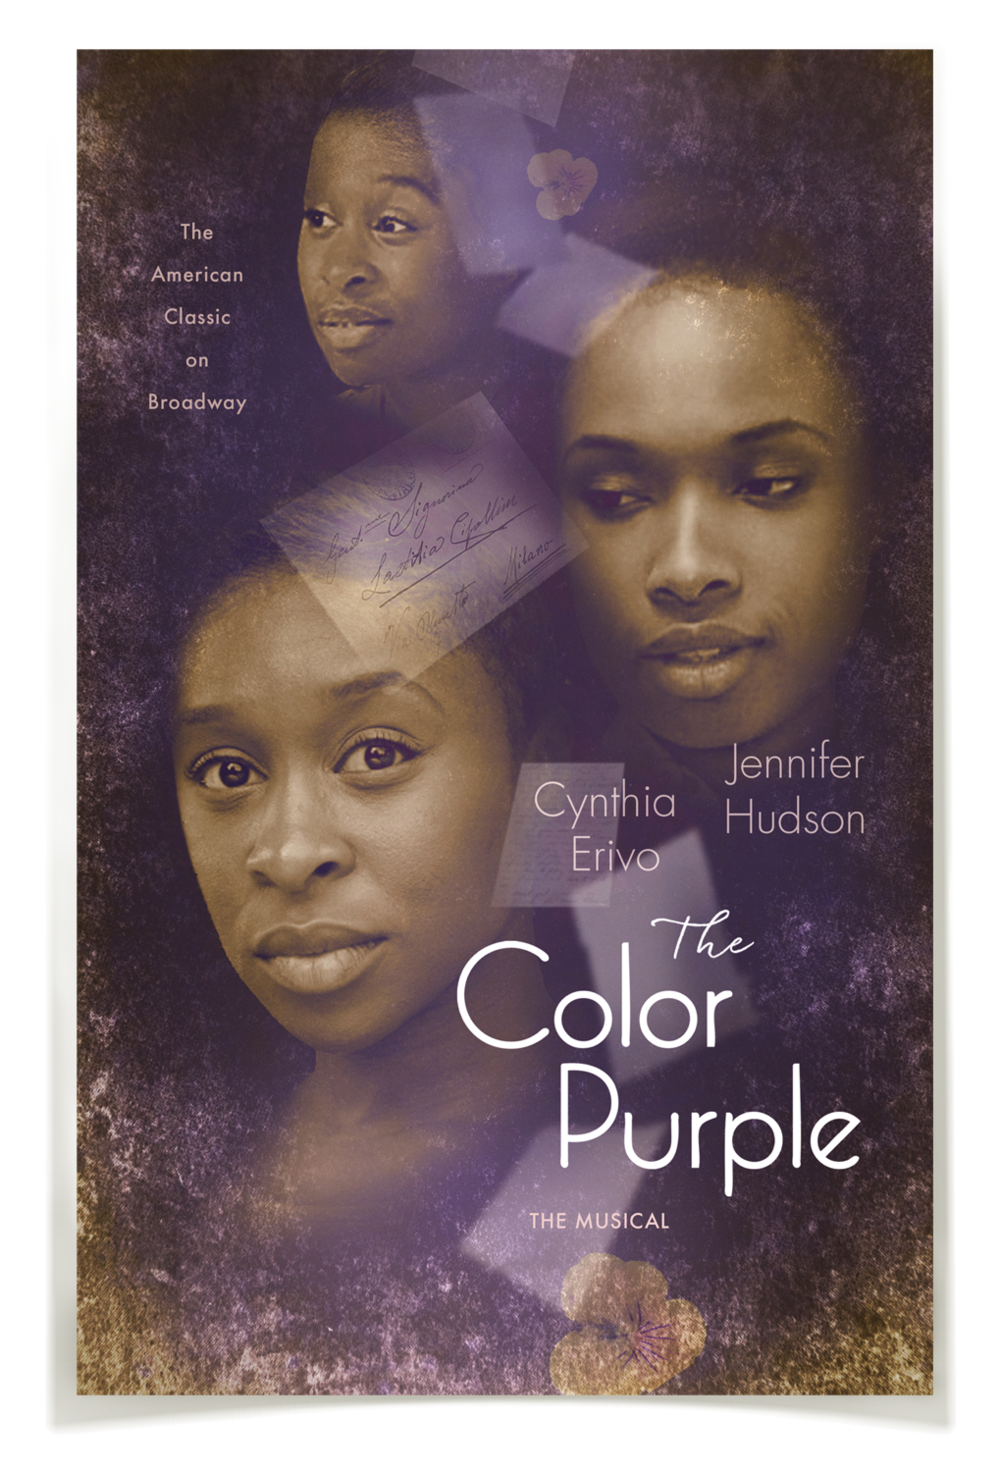 covell_design_color_purple_broadway_1.png